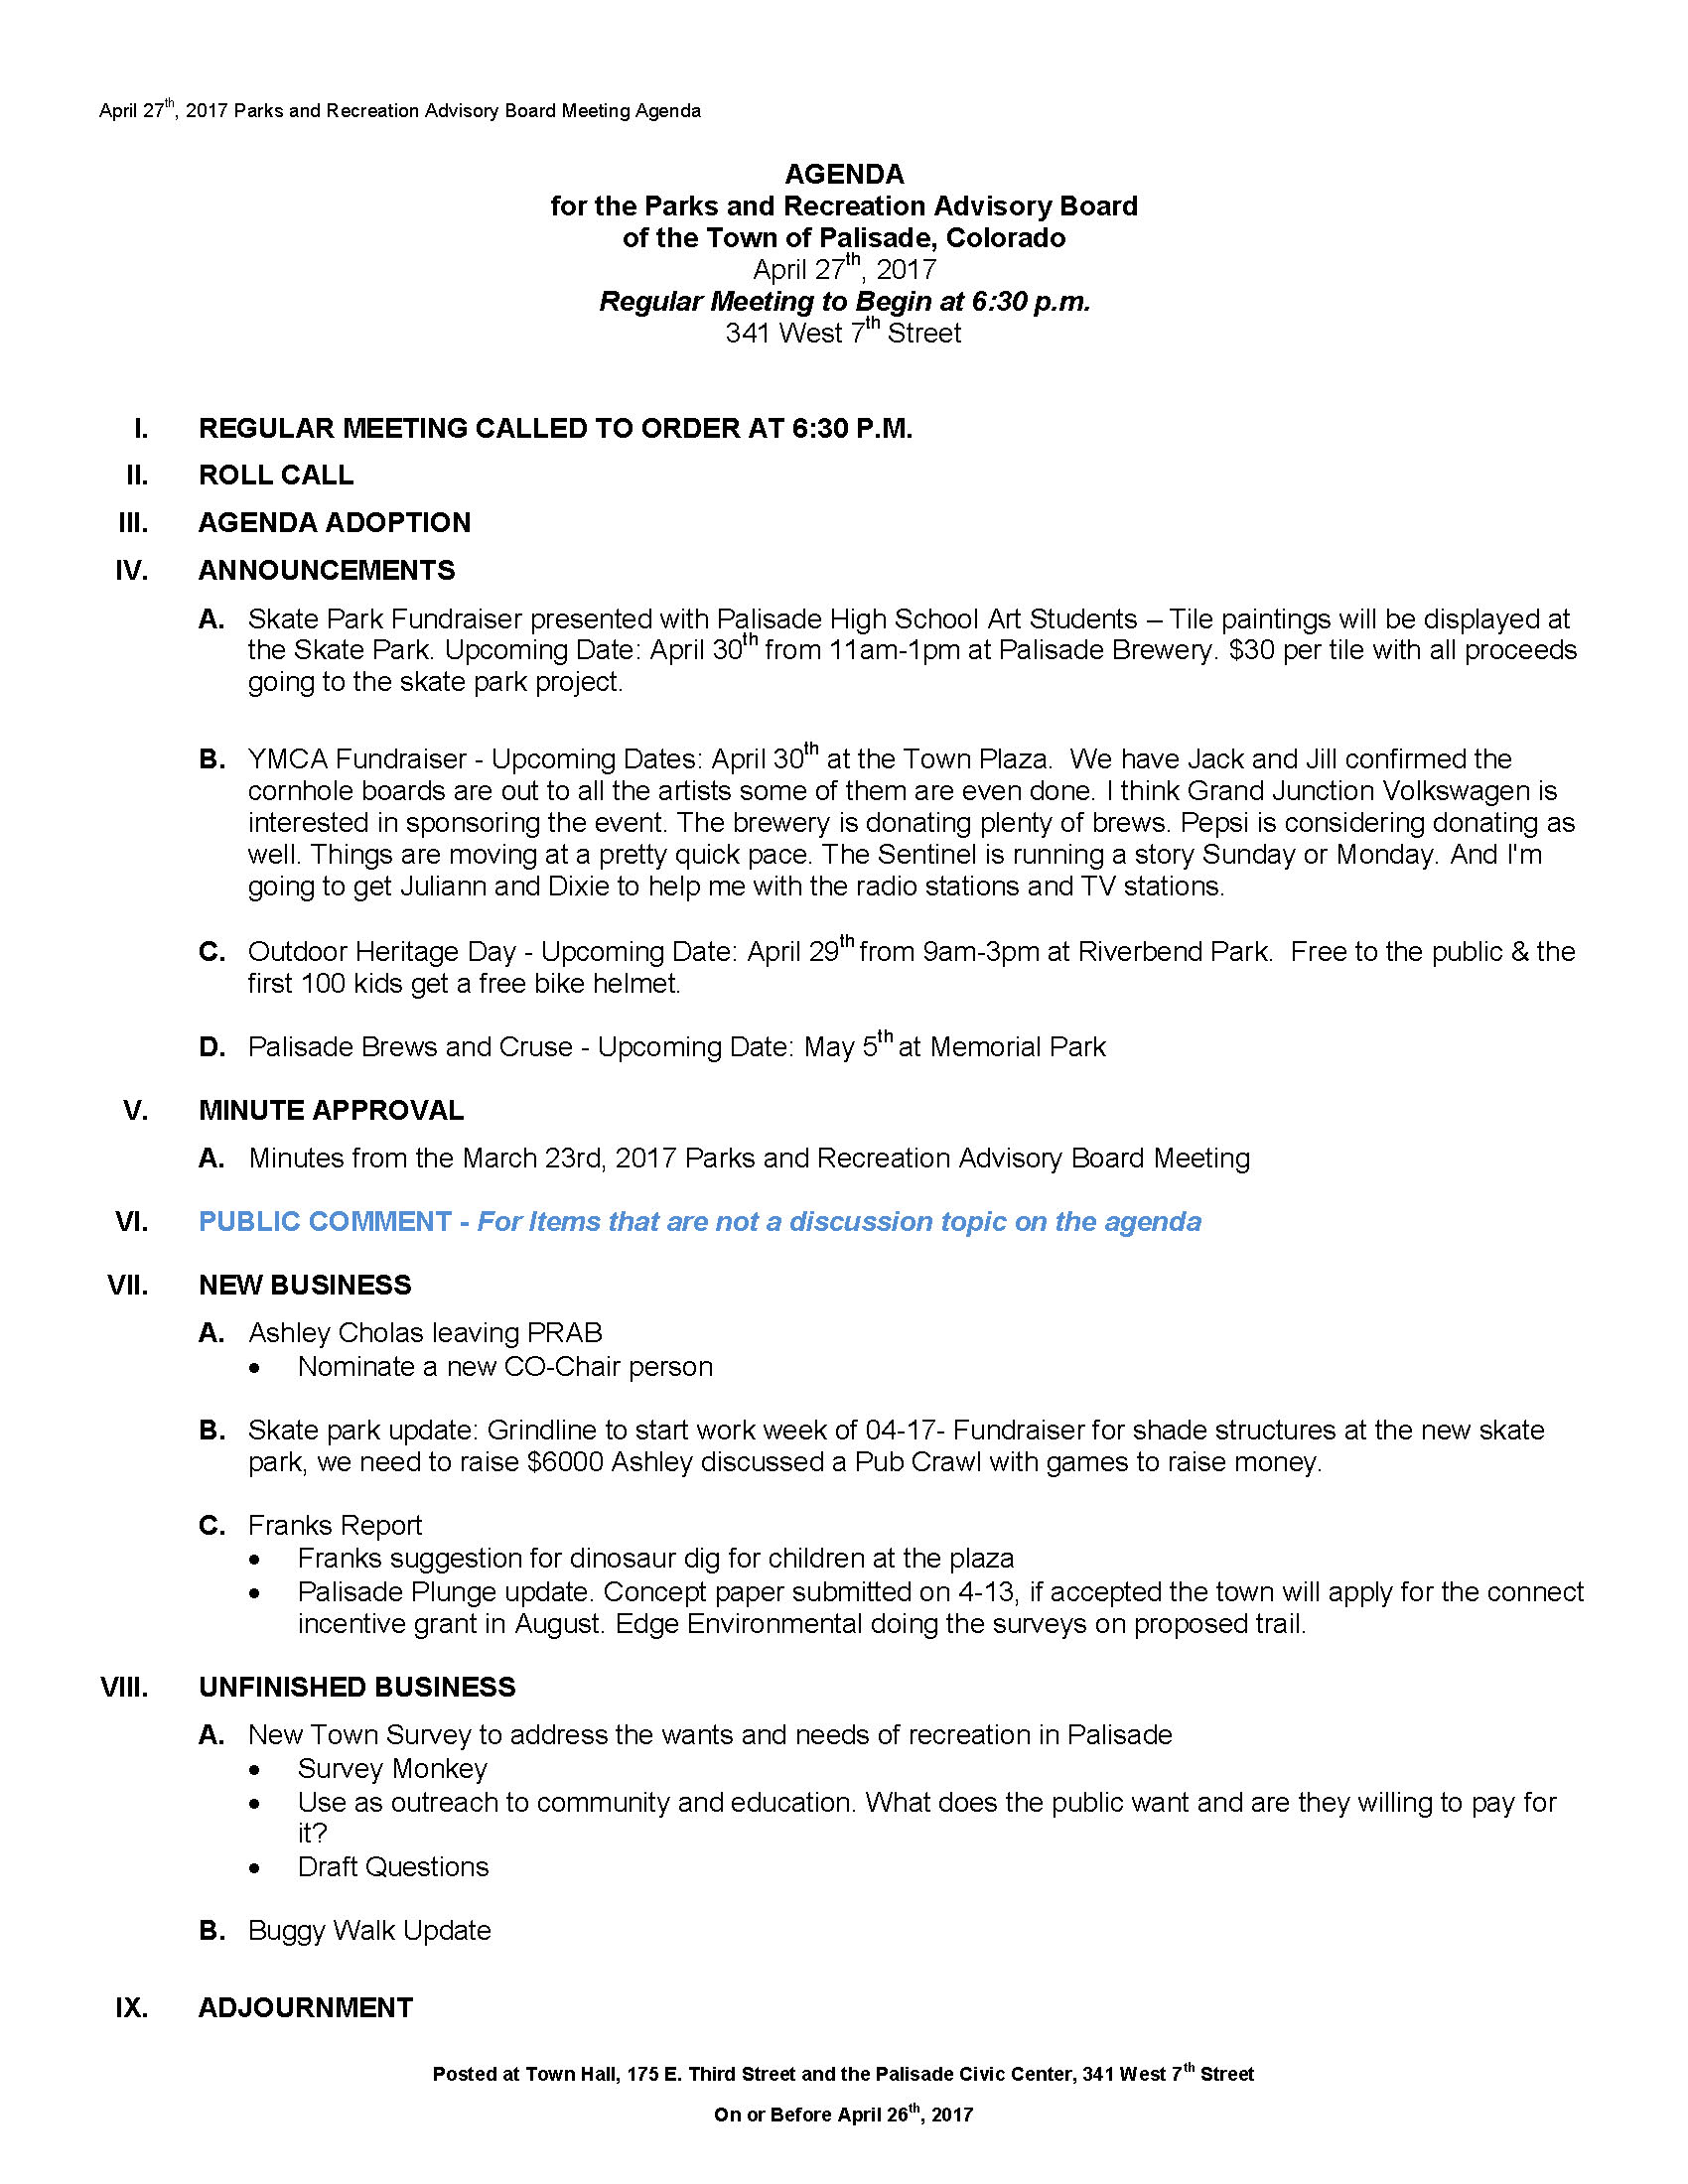 April 27th 2017 PRAC Meeting Agenda Page 1